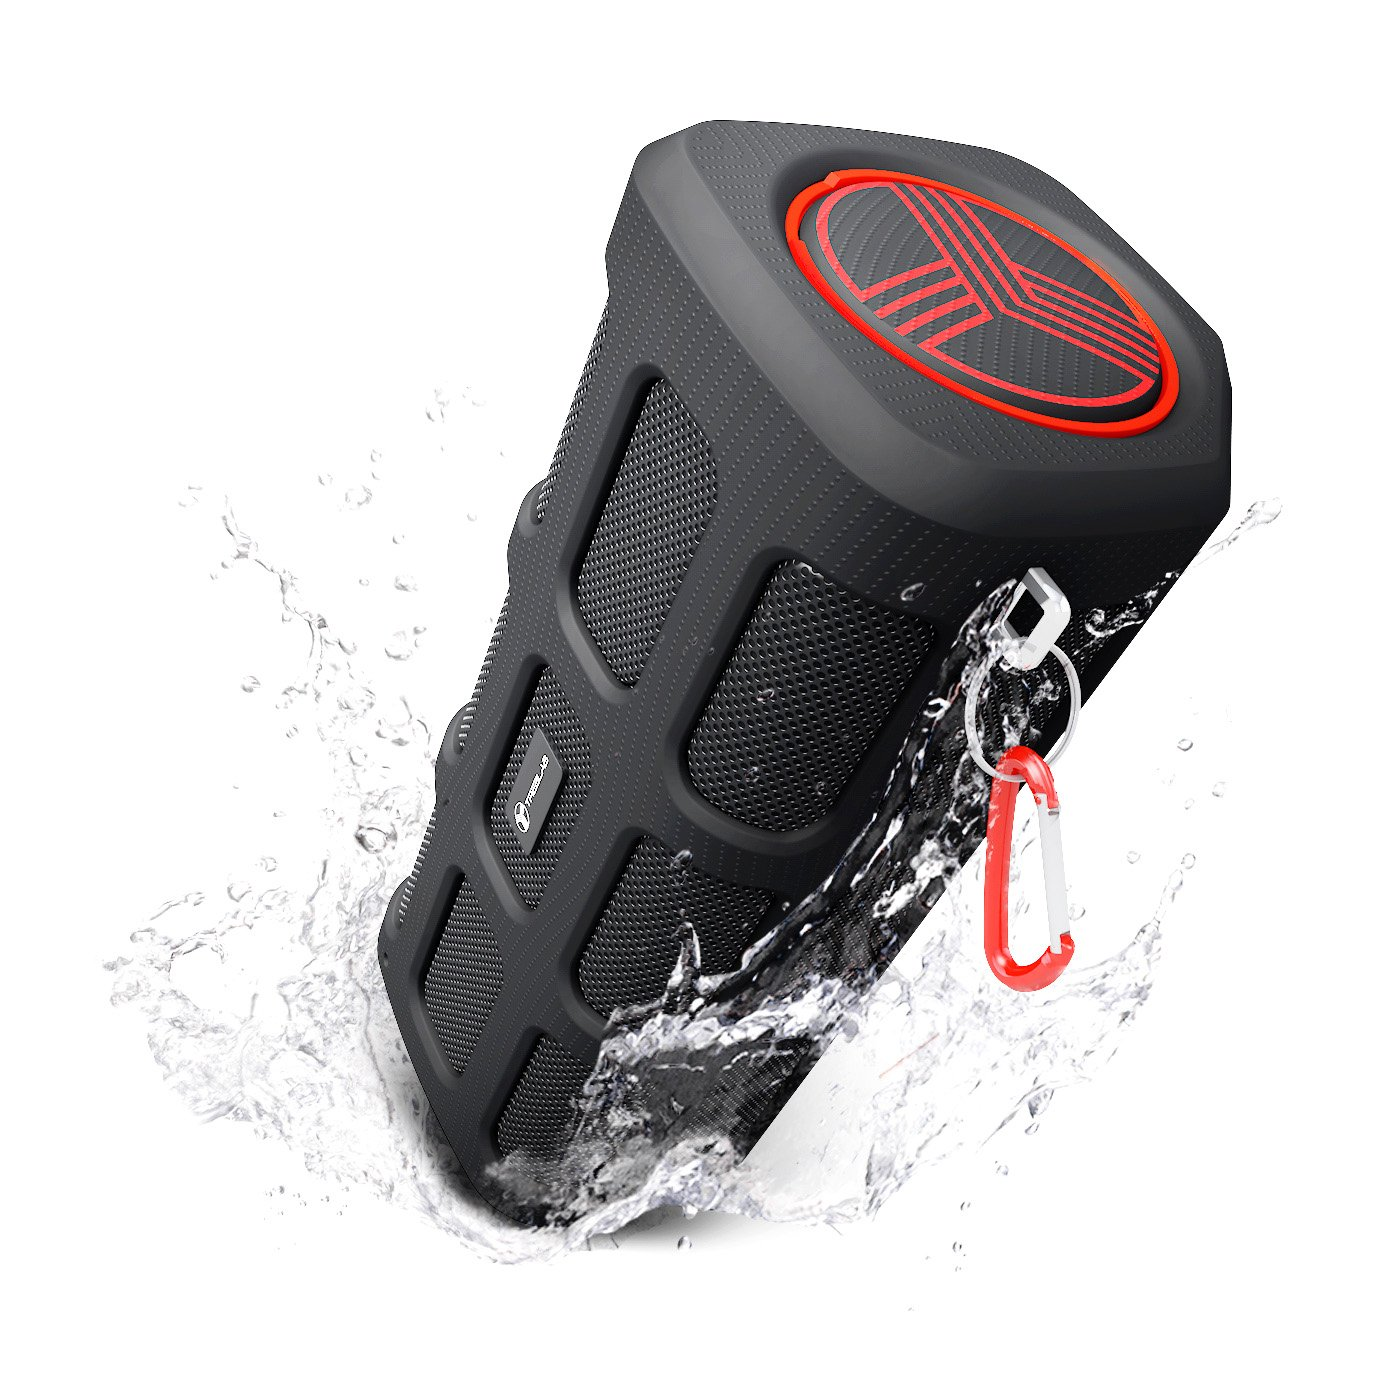 TREBLAB FX100 - Extreme Bluetooth Speaker - Loud, Rugged for Outdoors, Shockproof, Waterproof IPX4, Built-In 7000mAh Power Bank, HD Audio w/ Deep Bass, Portable Wireless Blue Tooth Microphone Mic by Treblab (Image #1)